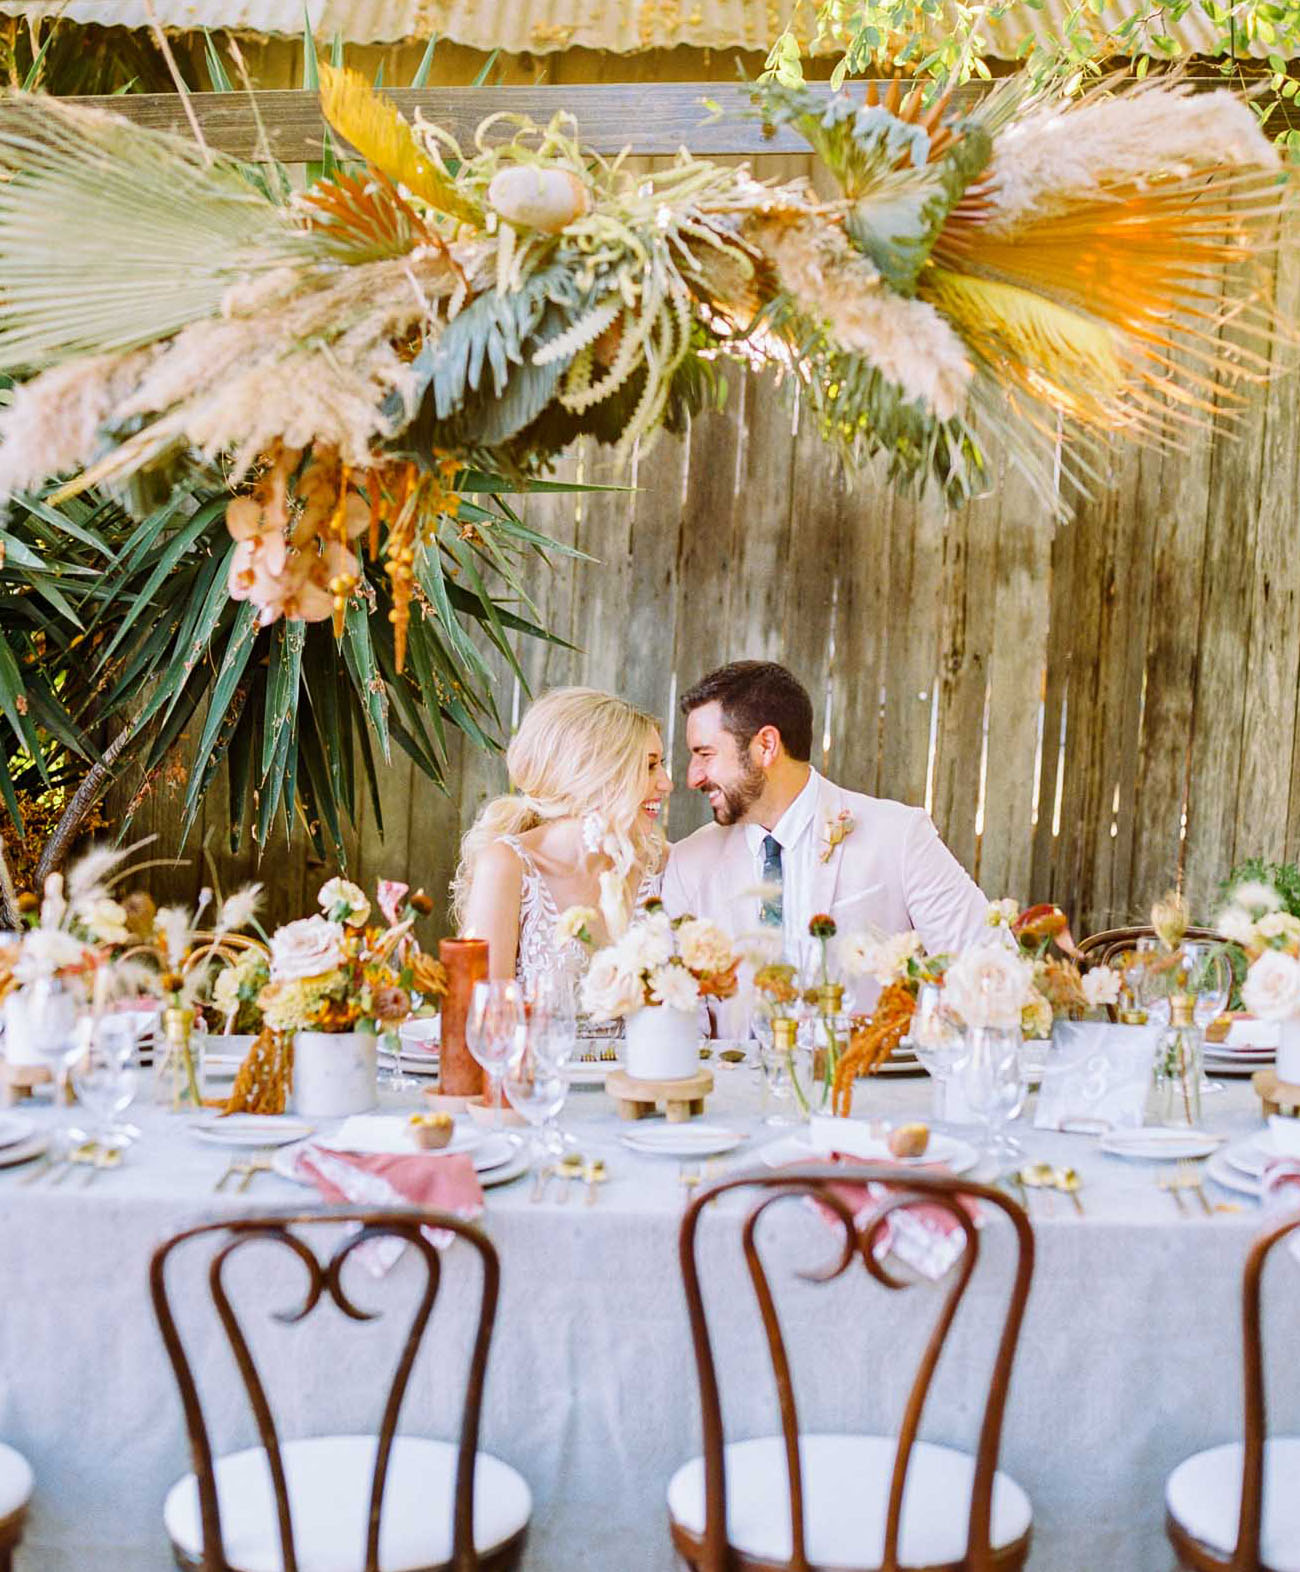 Byron Bay With a Cali Twist in This Romantic Boho Wedding Inspiration